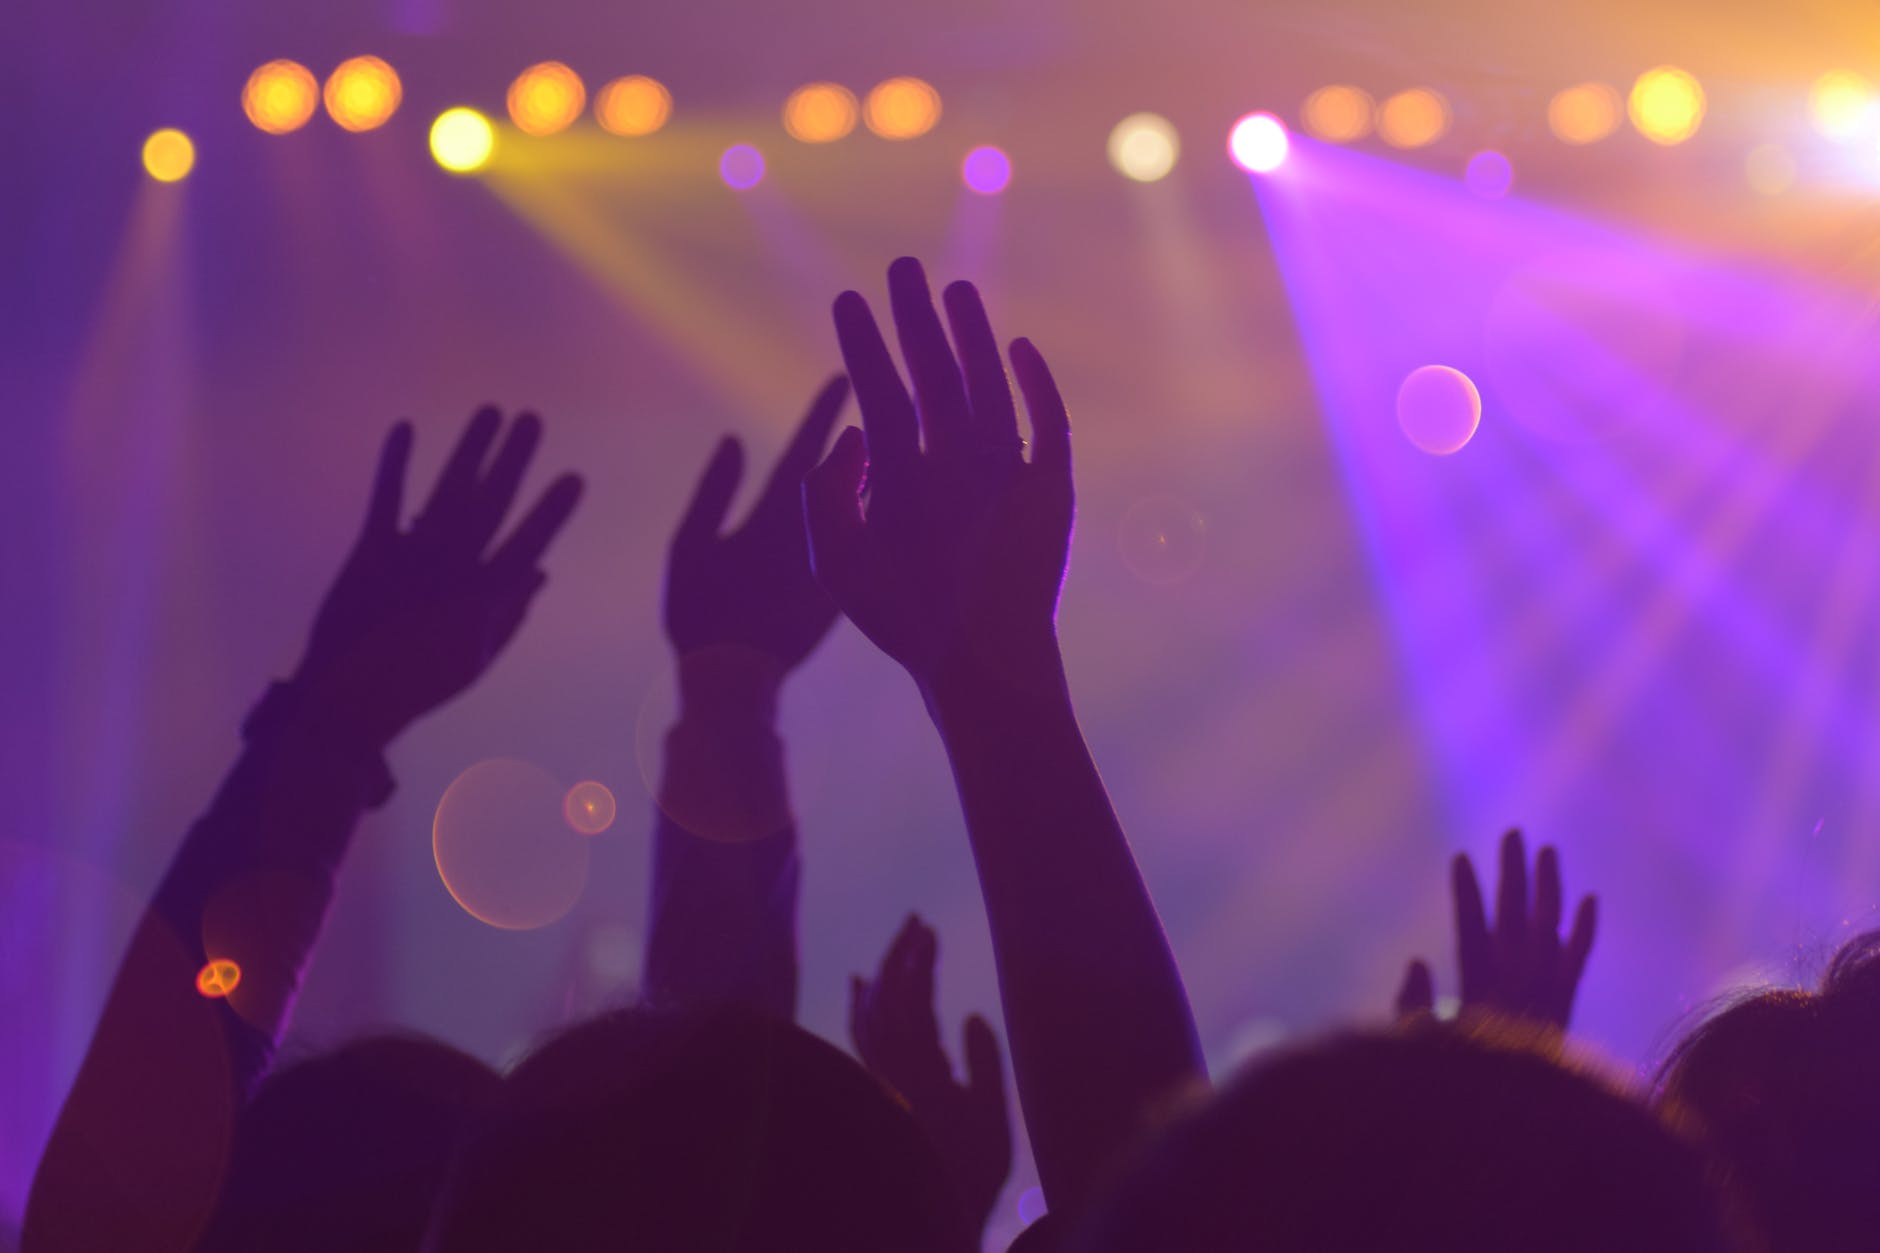 Hands raised in a busy club